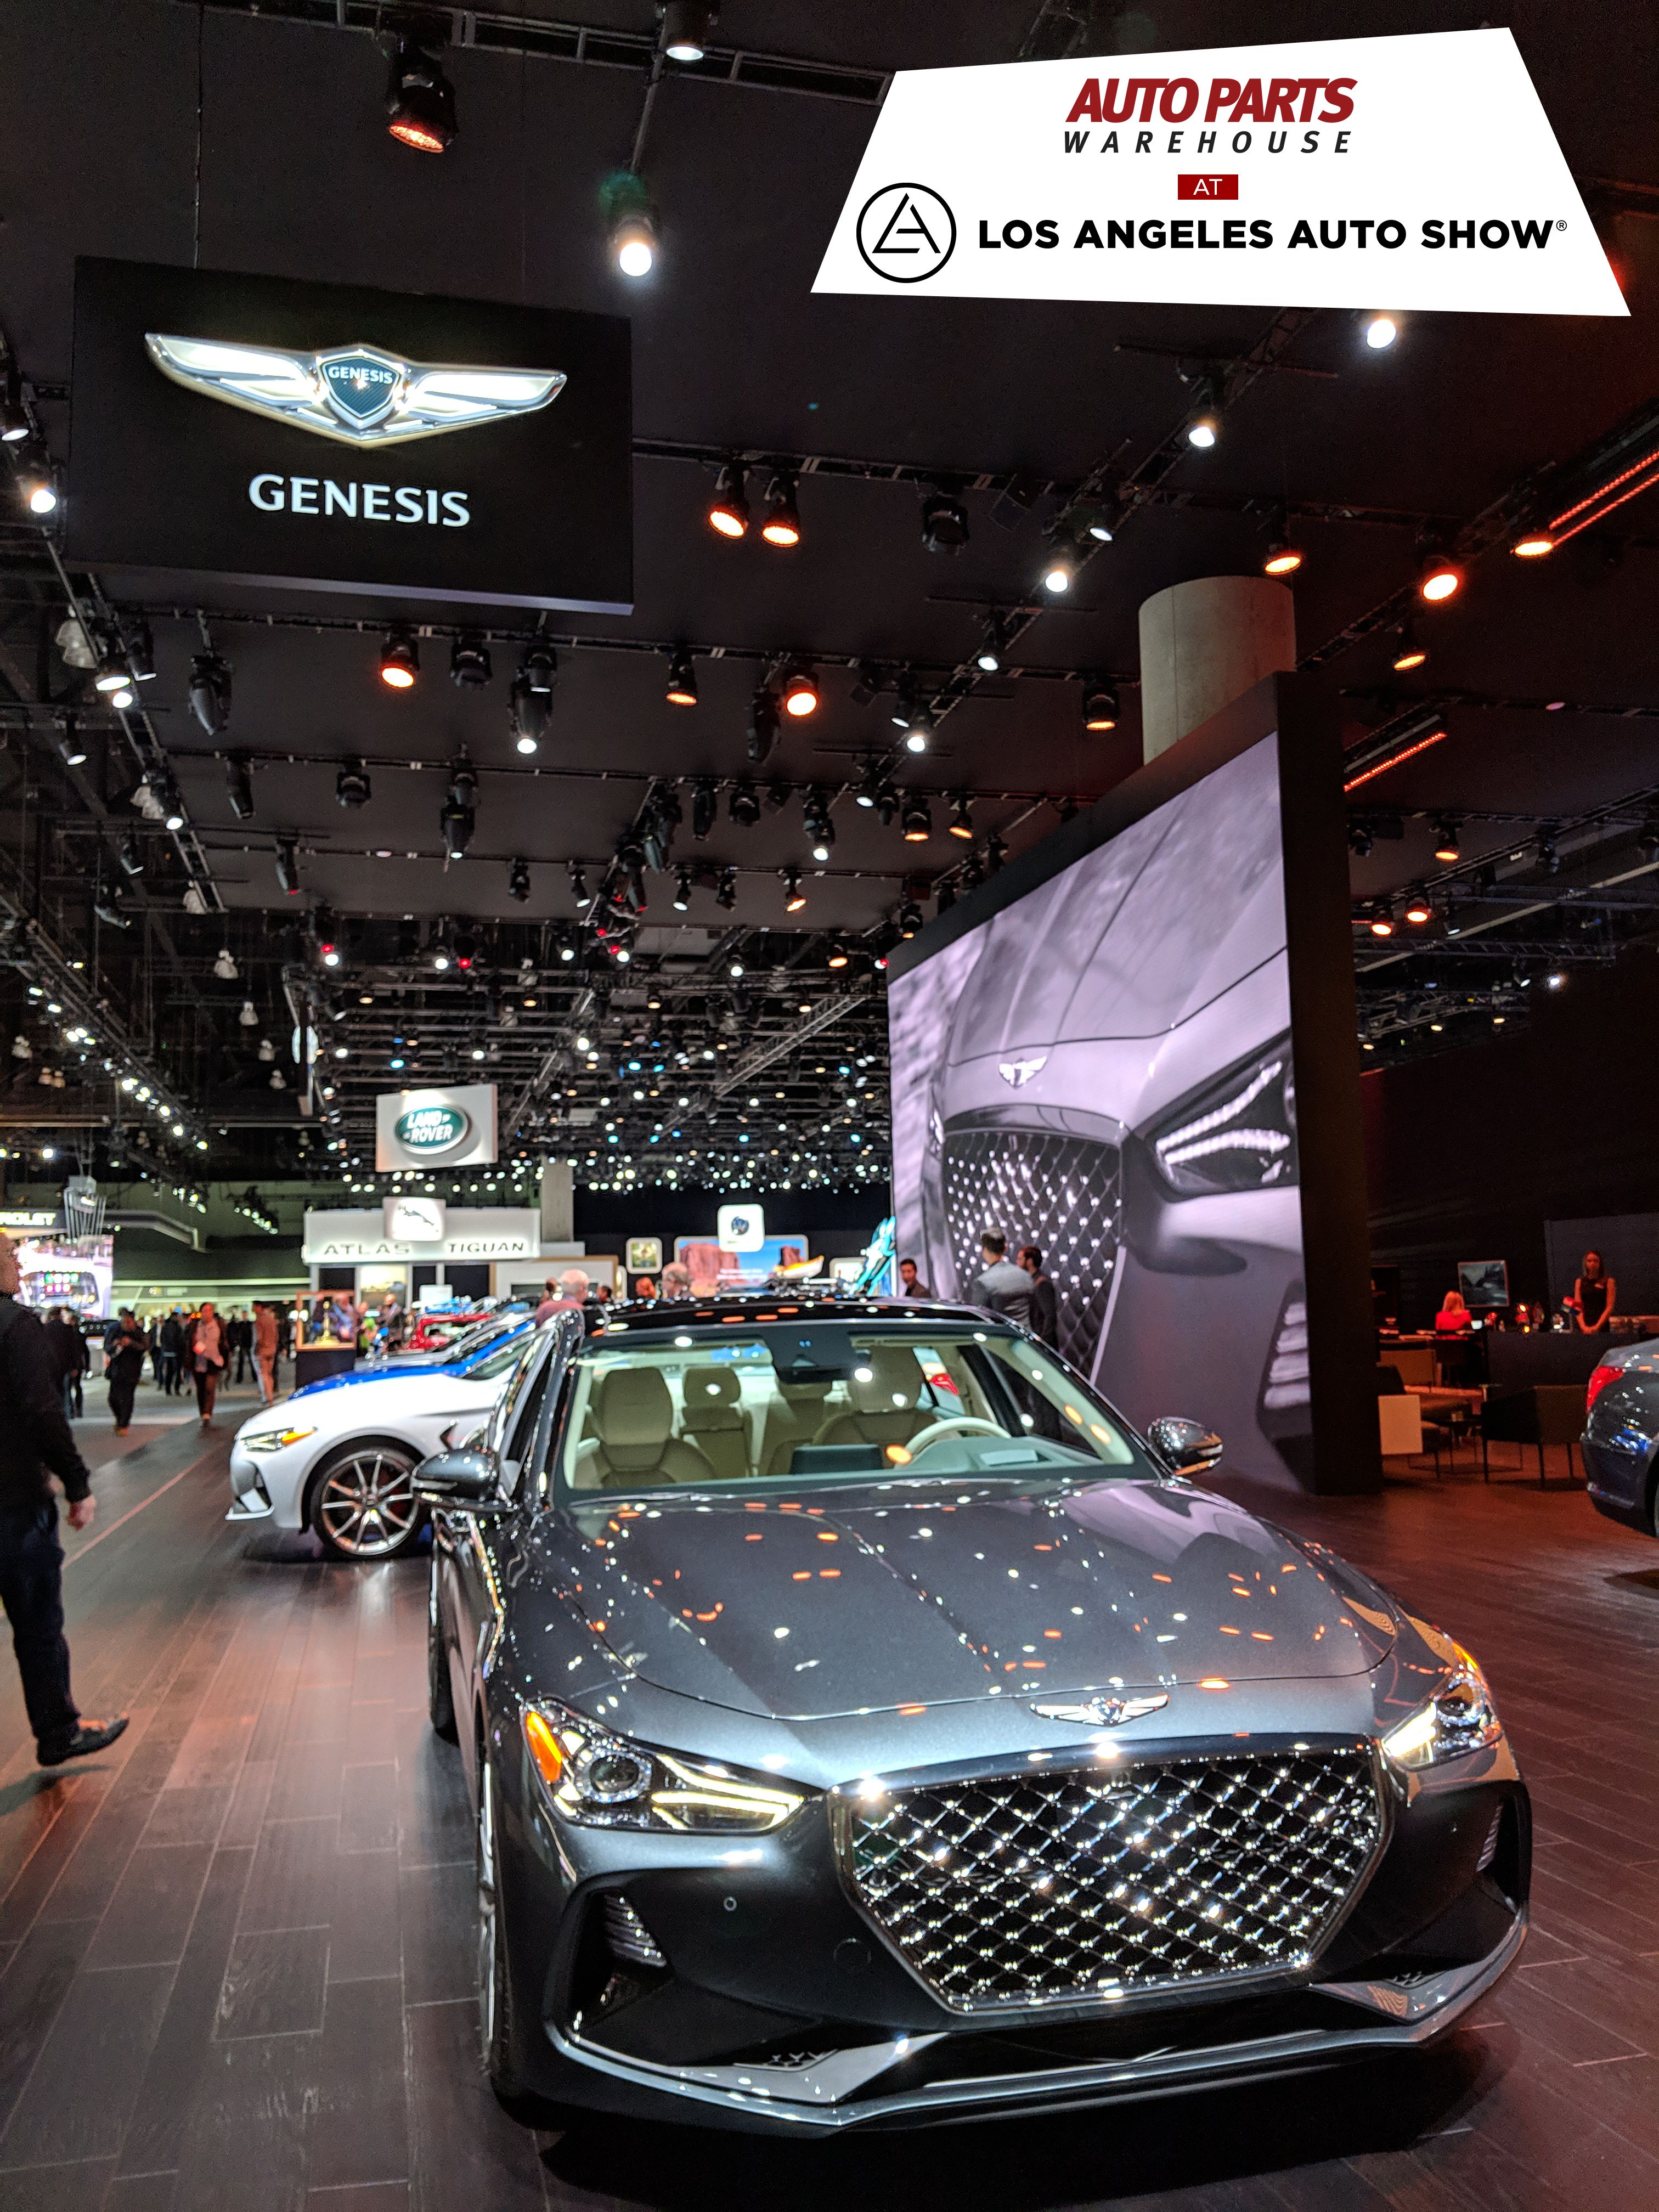 Auto Parts Warehouse Dropped By The Los Angeles Auto Show One Of The Largest Auto Shows In The World Here Are Some Discount Car Cheap Auto Parts La Auto Show